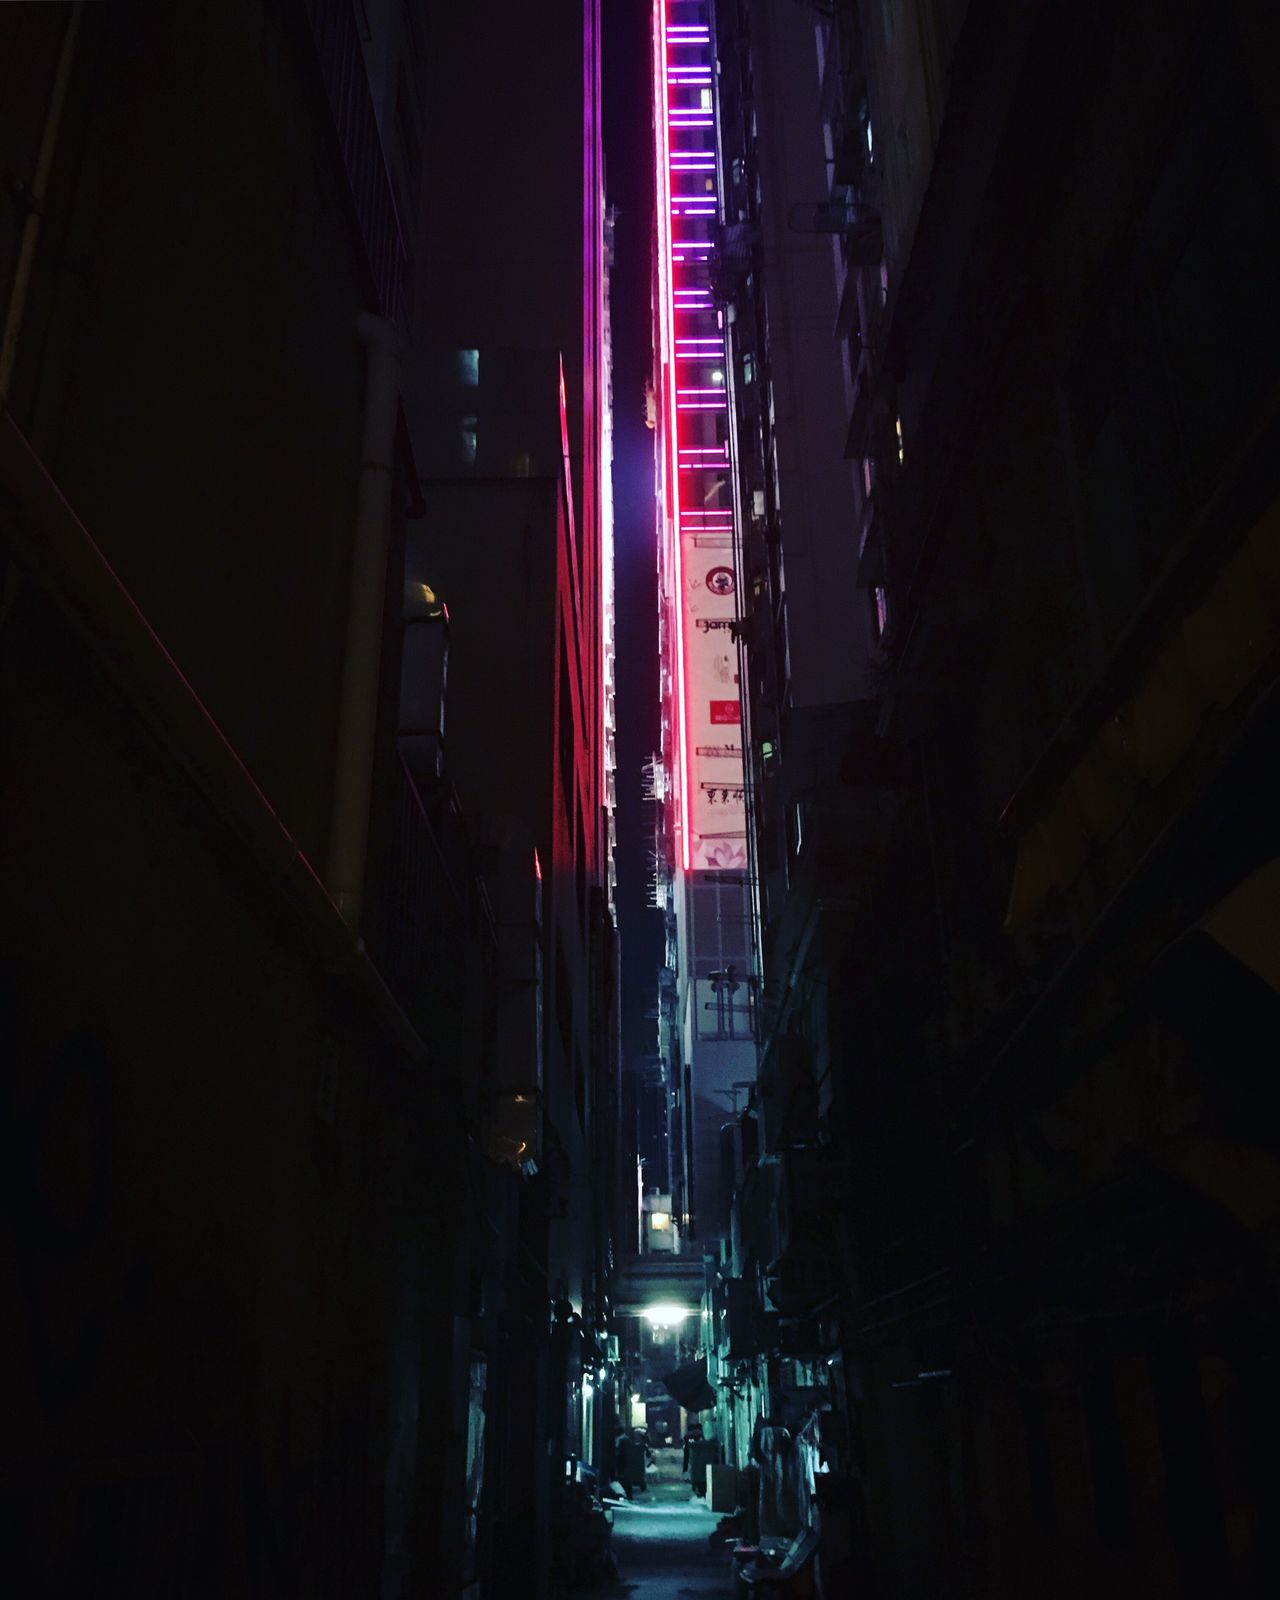 Illuminated Night Transportation Architecture City Outdoors No People Hong Kong Neon Lights Night Lights City Life